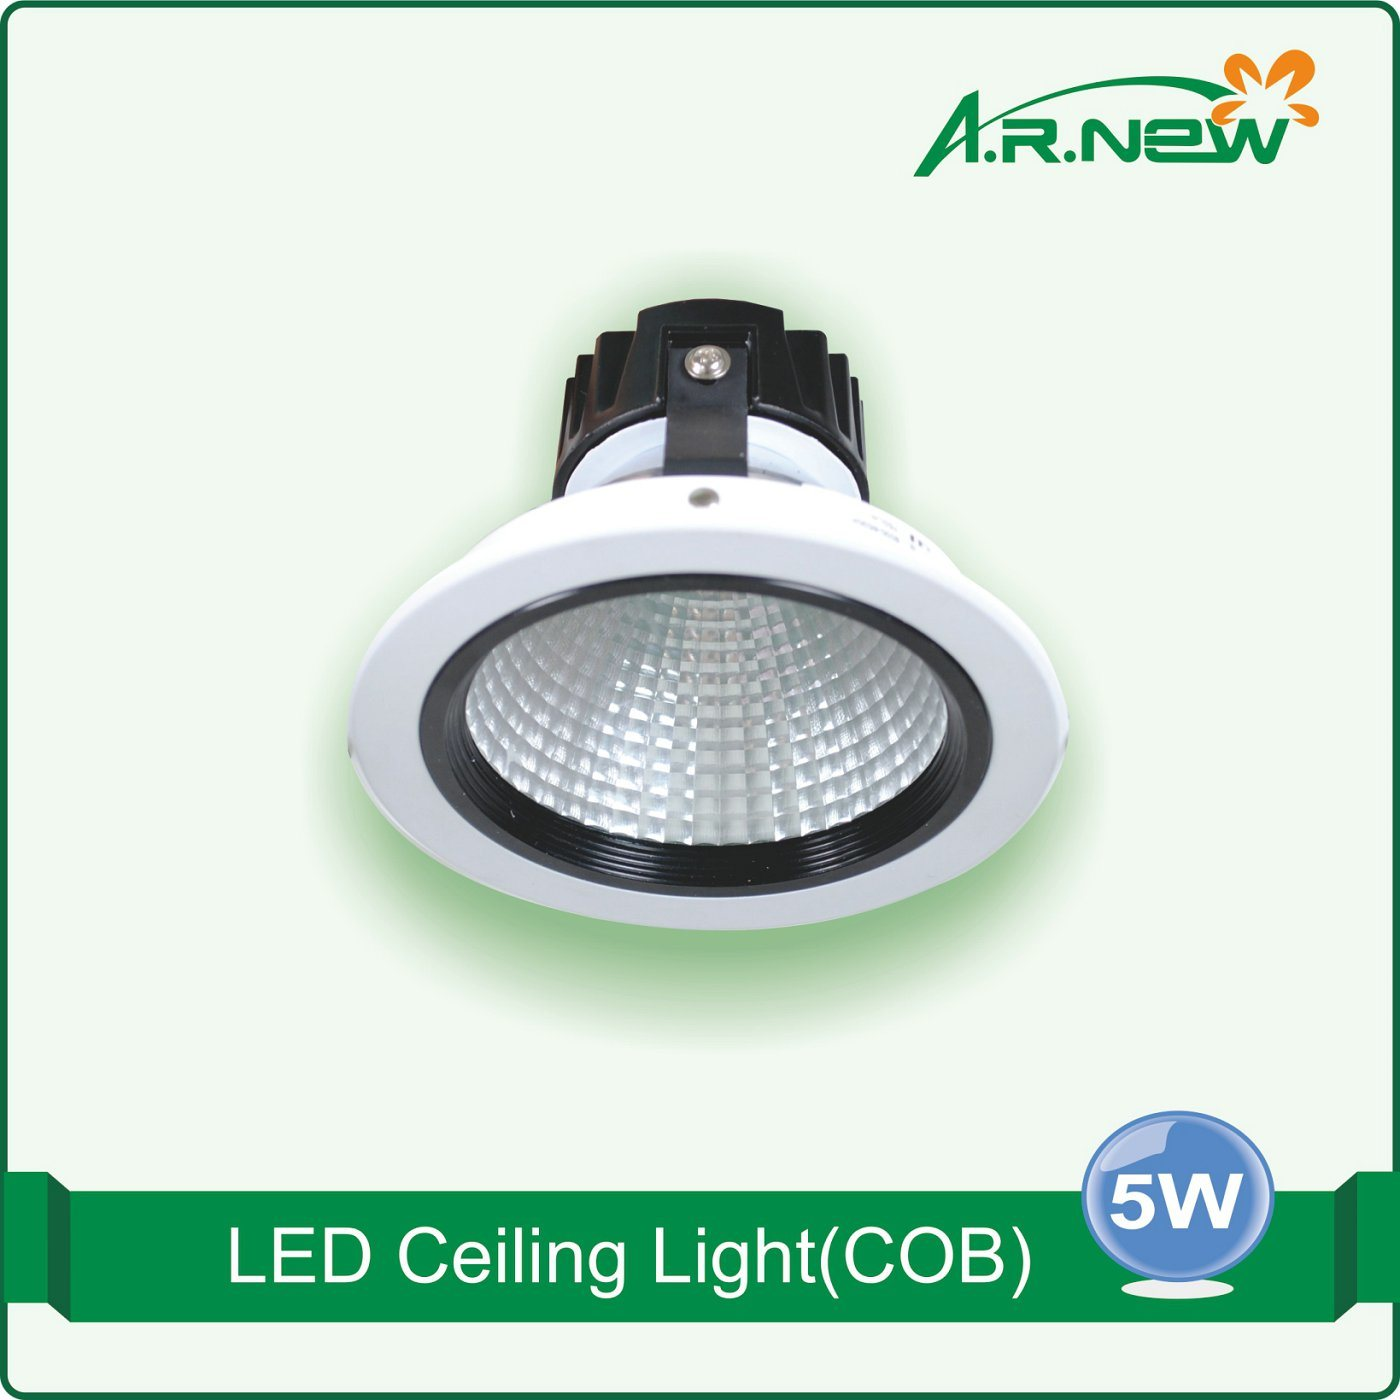 Led Ceiling Lights Made In China : Led recessed ceiling grid lamp china lighting light